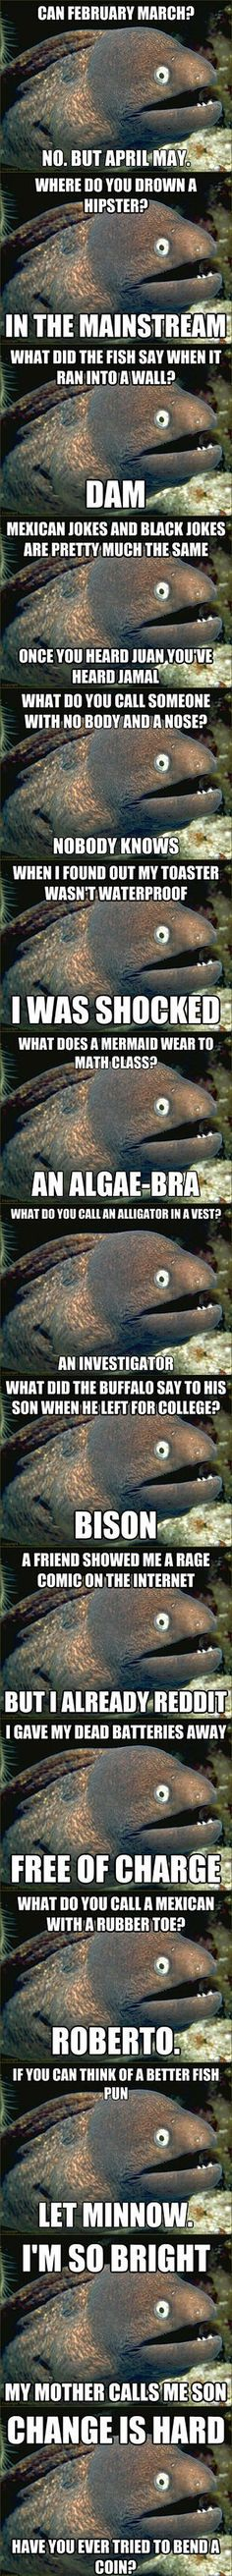 The Best of Bad Joke Eel/ puns for Ellie :)// almost all of these made me facepalm. That's how you know it's a good bad pun!